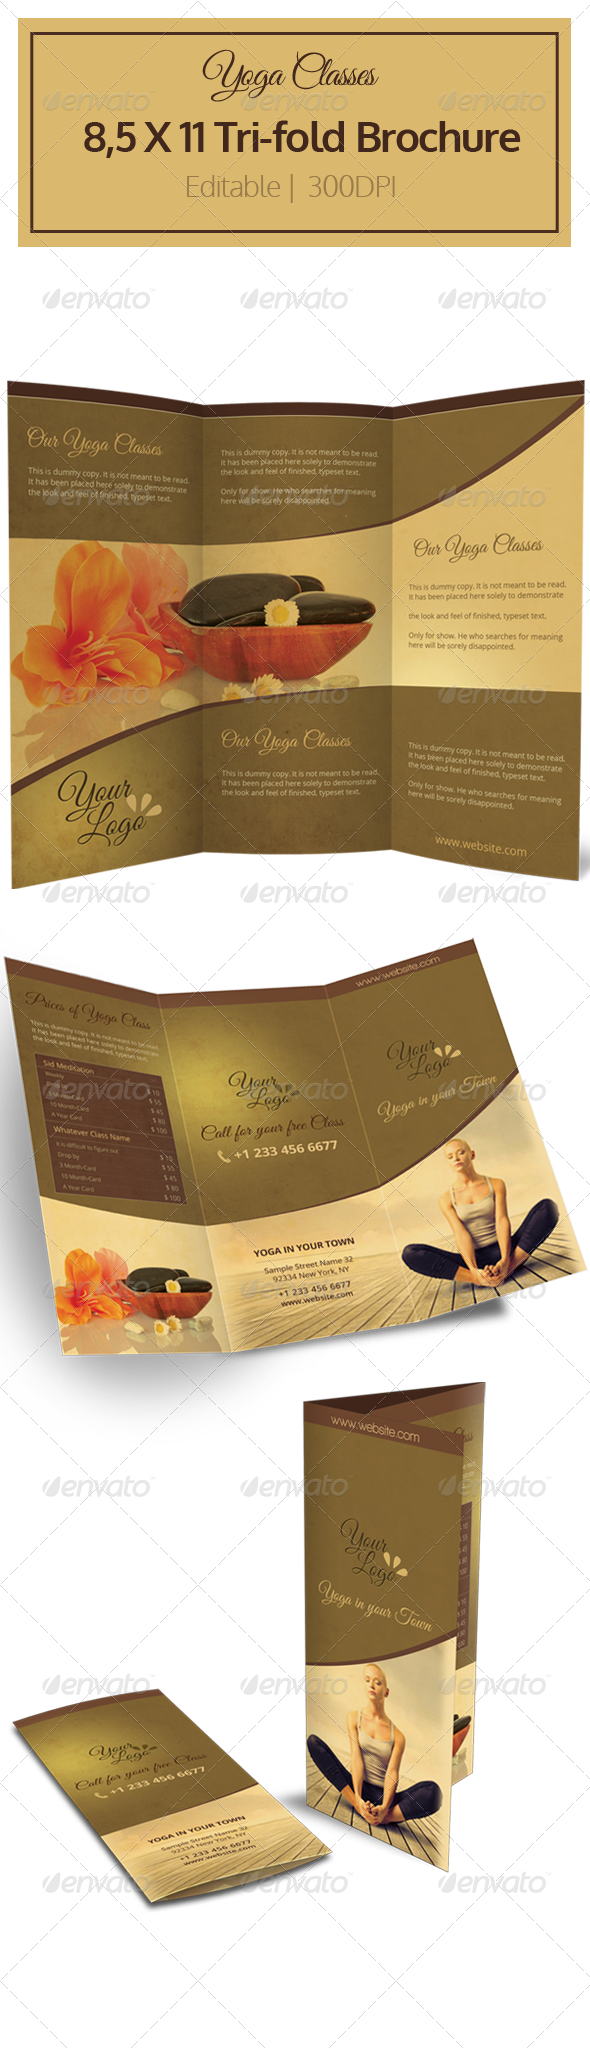 yoga tri fold brochure graphicriver. Black Bedroom Furniture Sets. Home Design Ideas